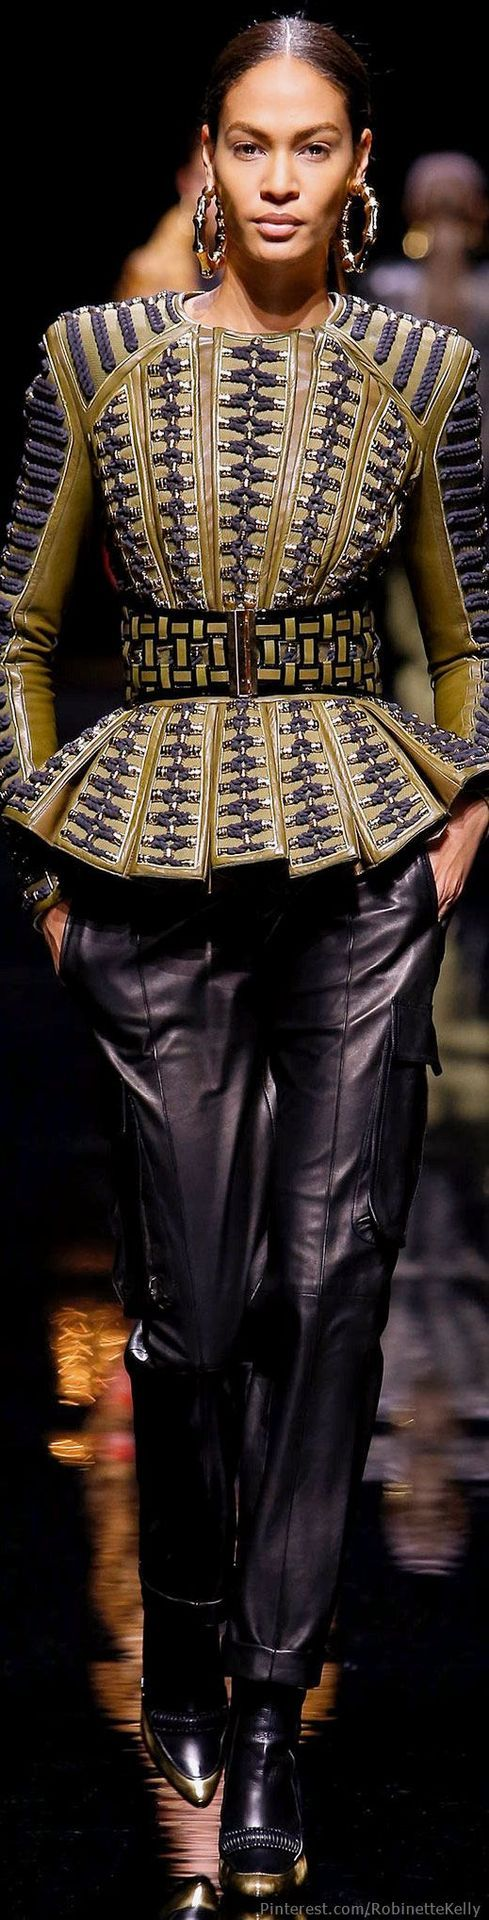 Striking!  Balmain 2014